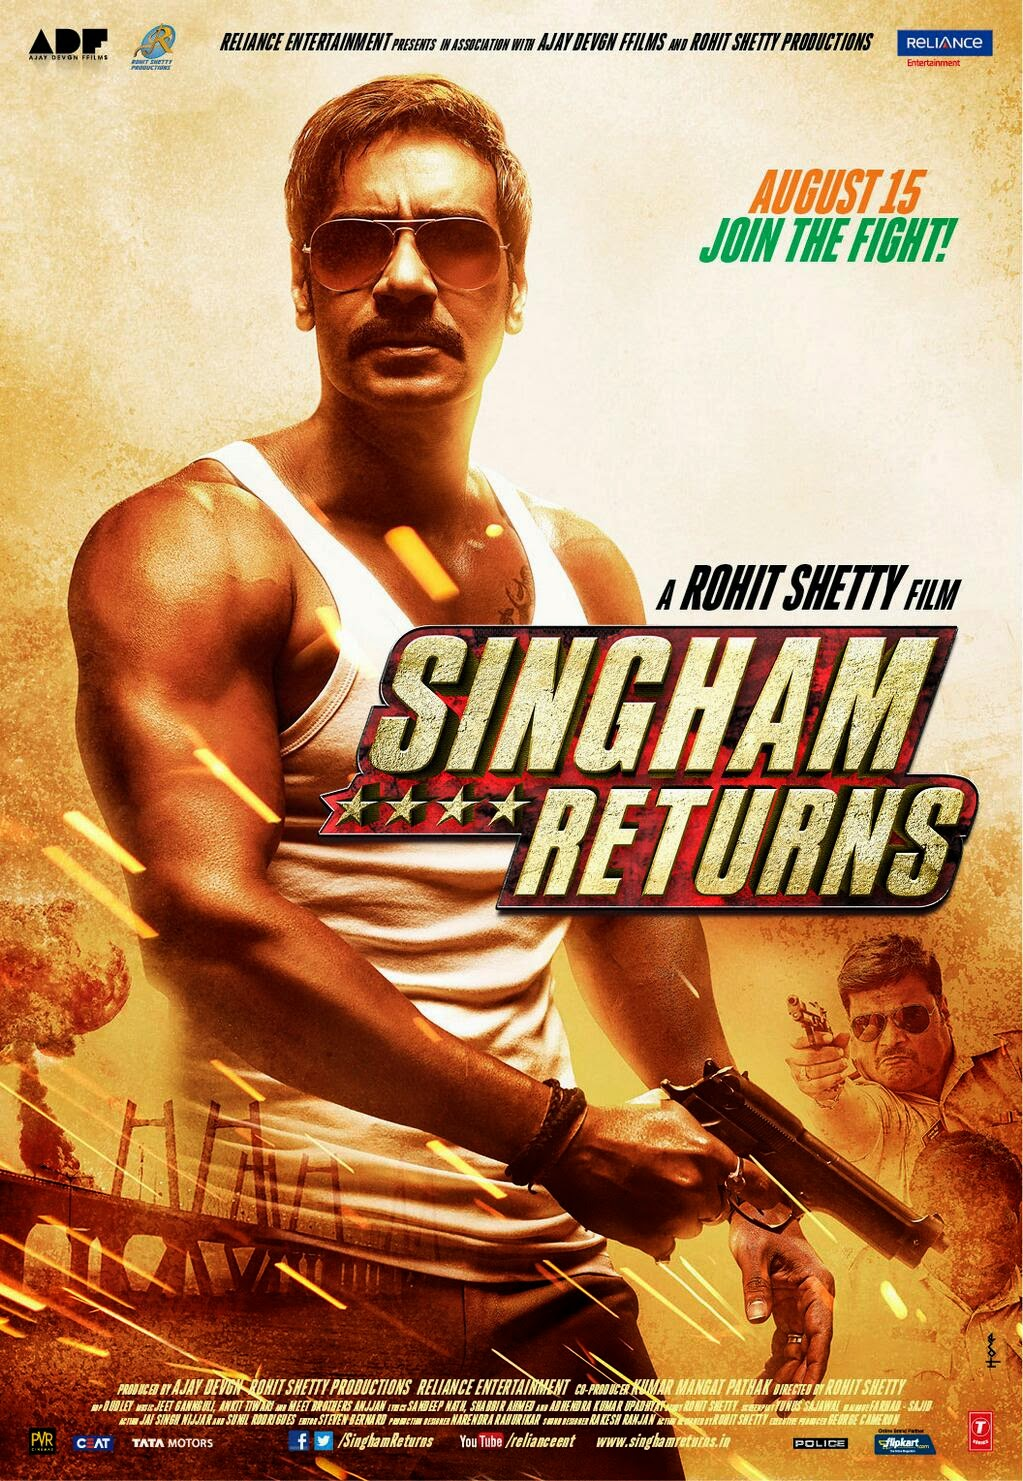 Singham Returns (2014) First Look Poster - Ajay Devgan and Kareena Kapoor